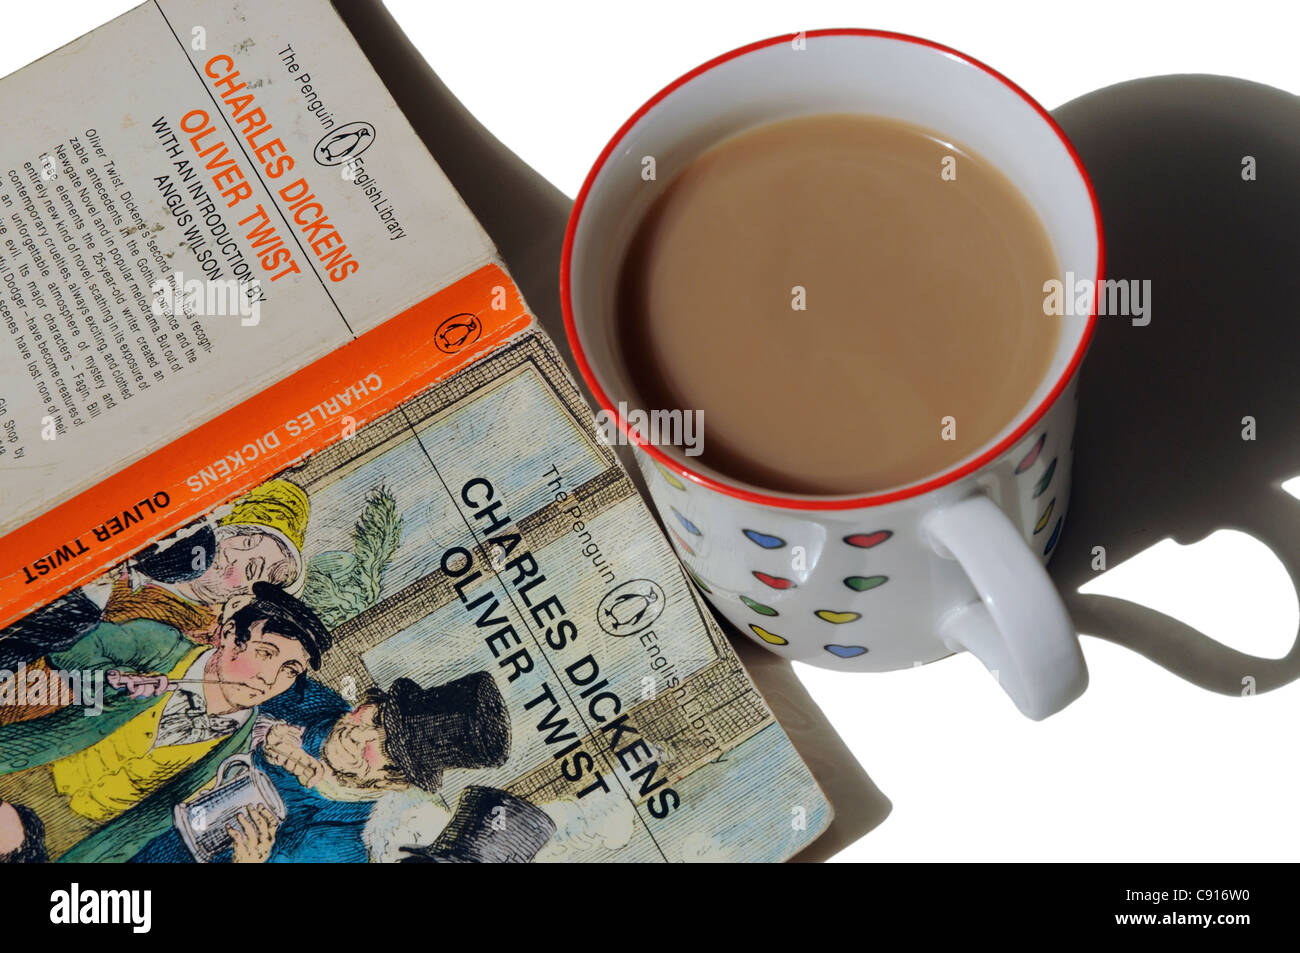 Oliver Twist by Charles Dickens - Stock Image